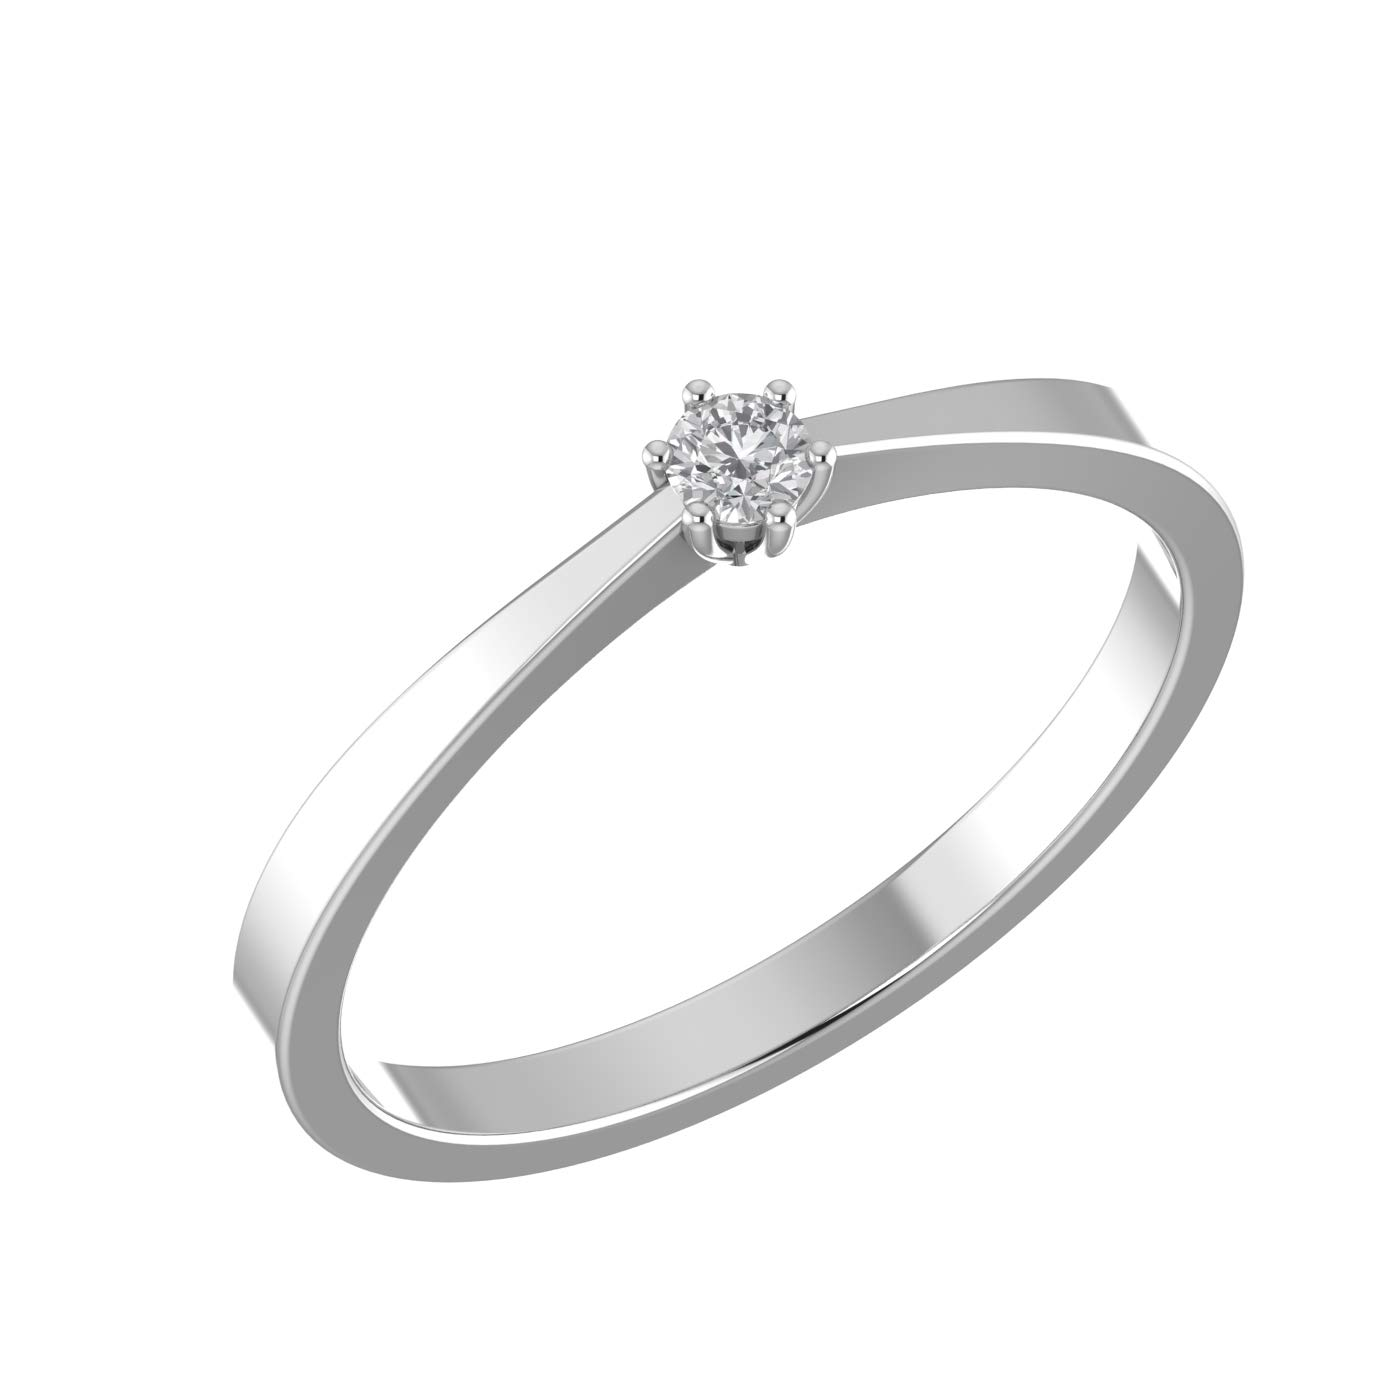 Amayra 0.07 CTW Diamond Ring - 1 Natural Round Stones in 925 Sterling Silver- Brilliant Cut(Color-GH Clarity-VS-SI)-Perfect for Bridal Promise Ring, Wedding Anniversary or Beautiful Gift